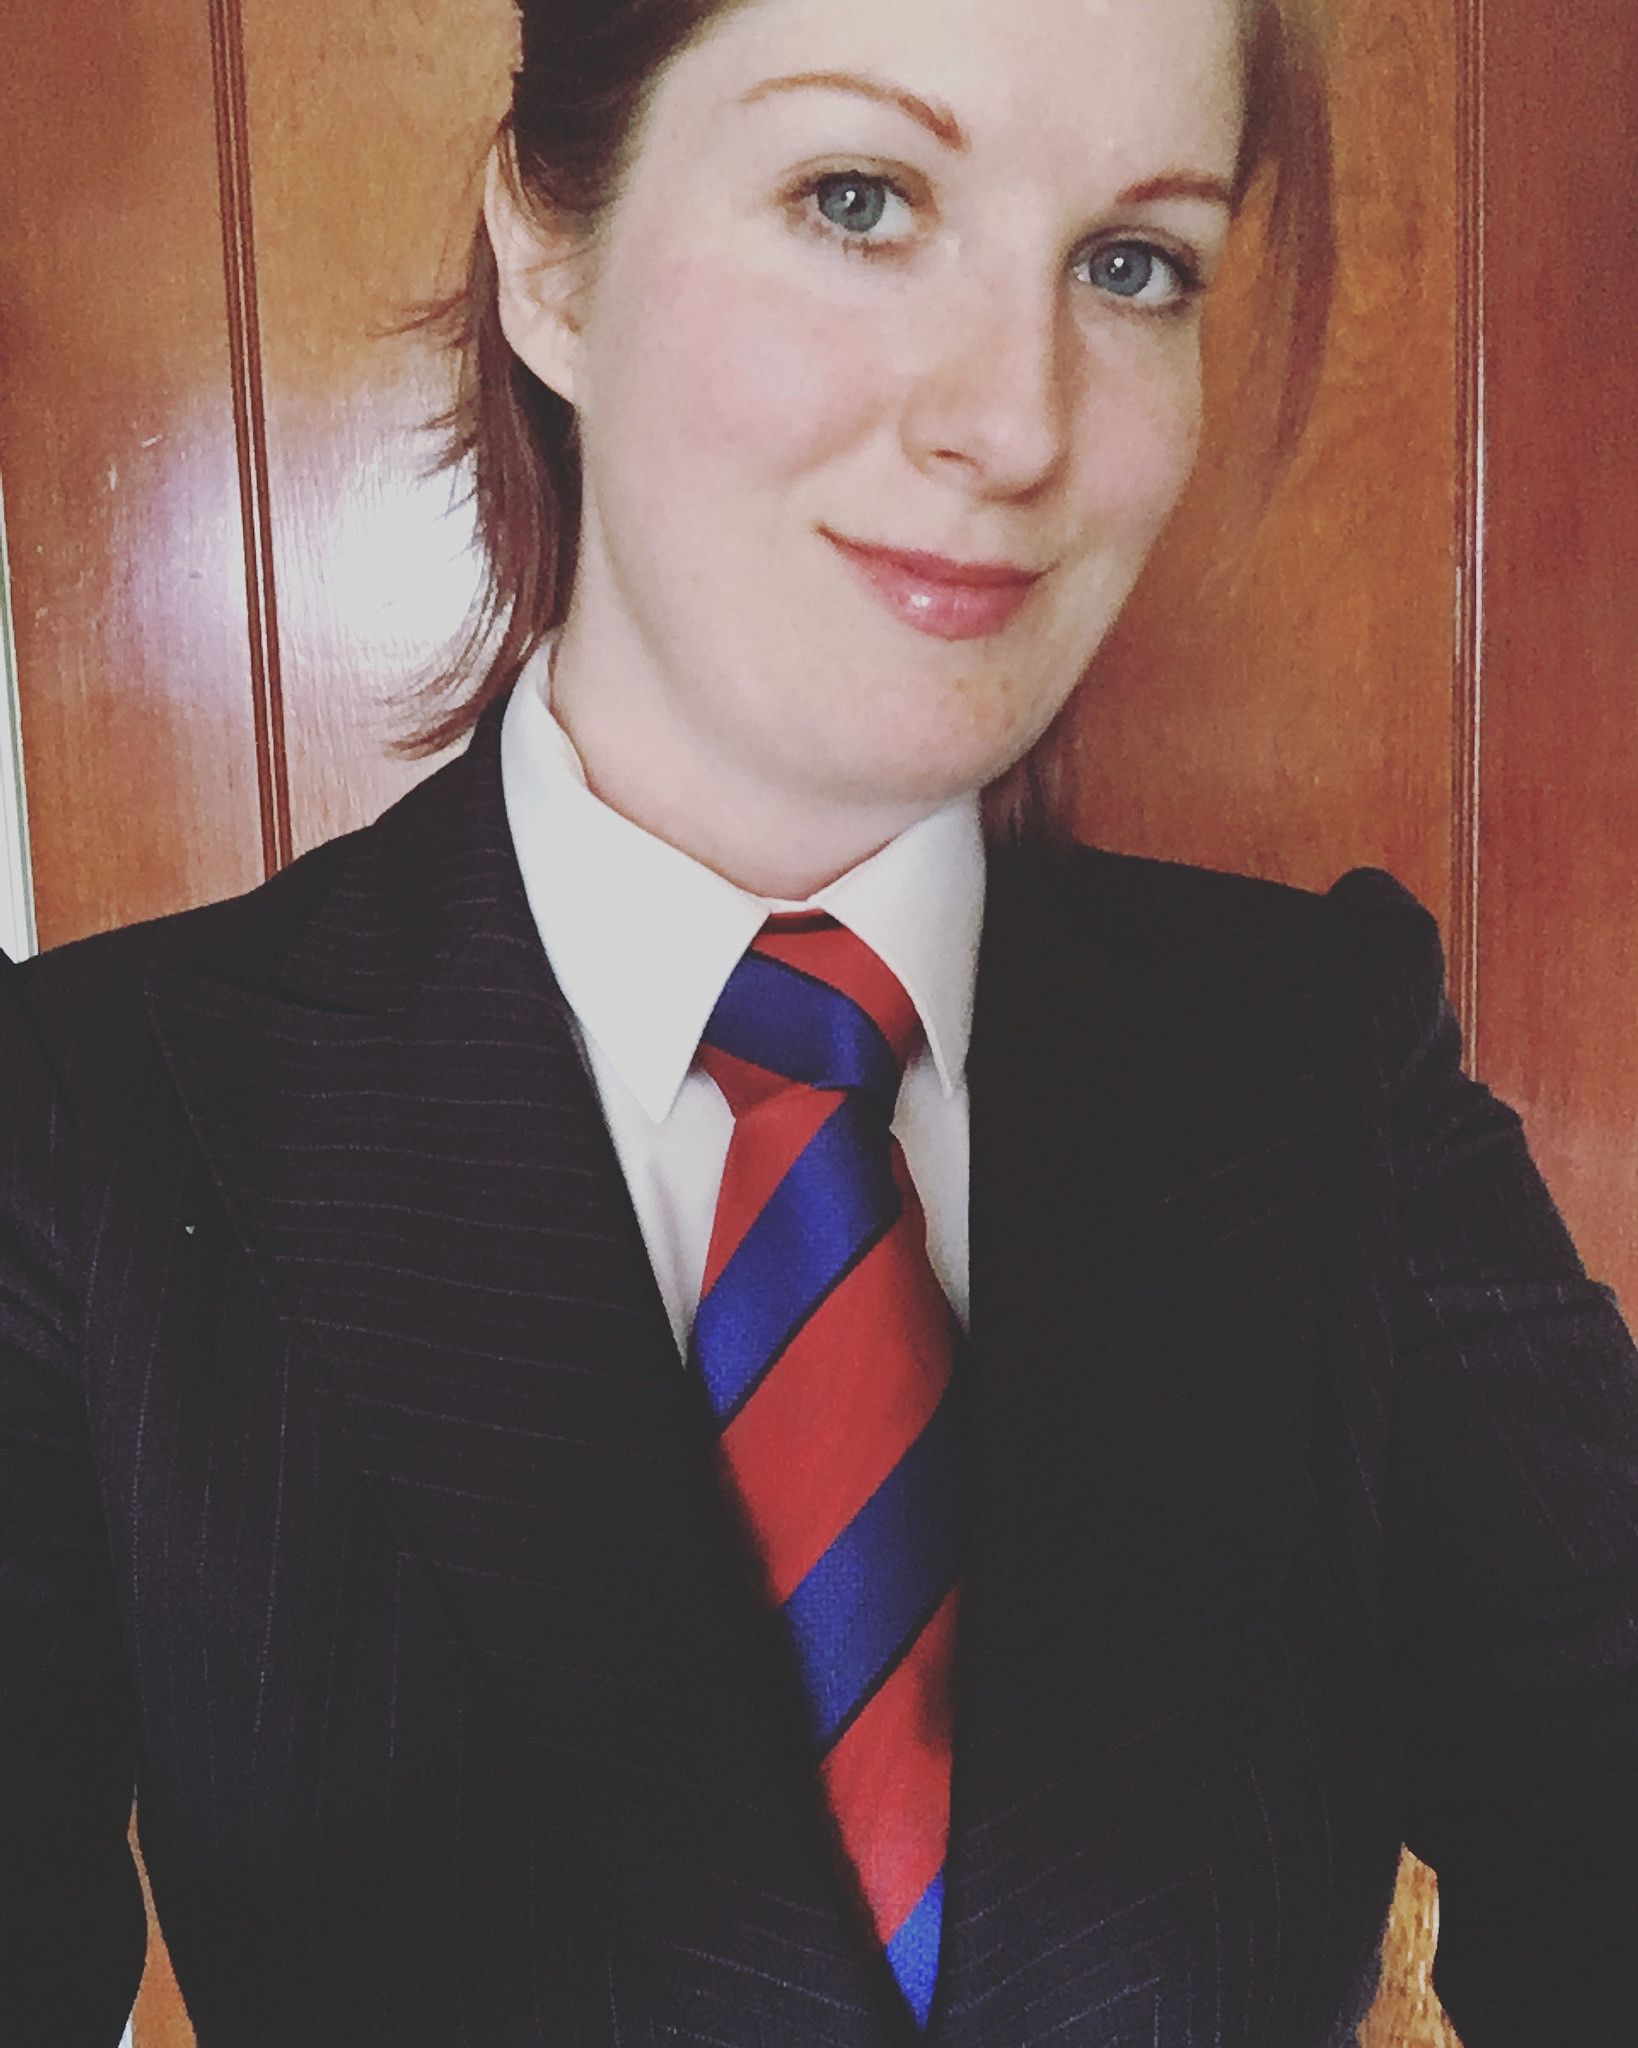 Woman Kat Surth wearing a blue and red tie | Dimples ...